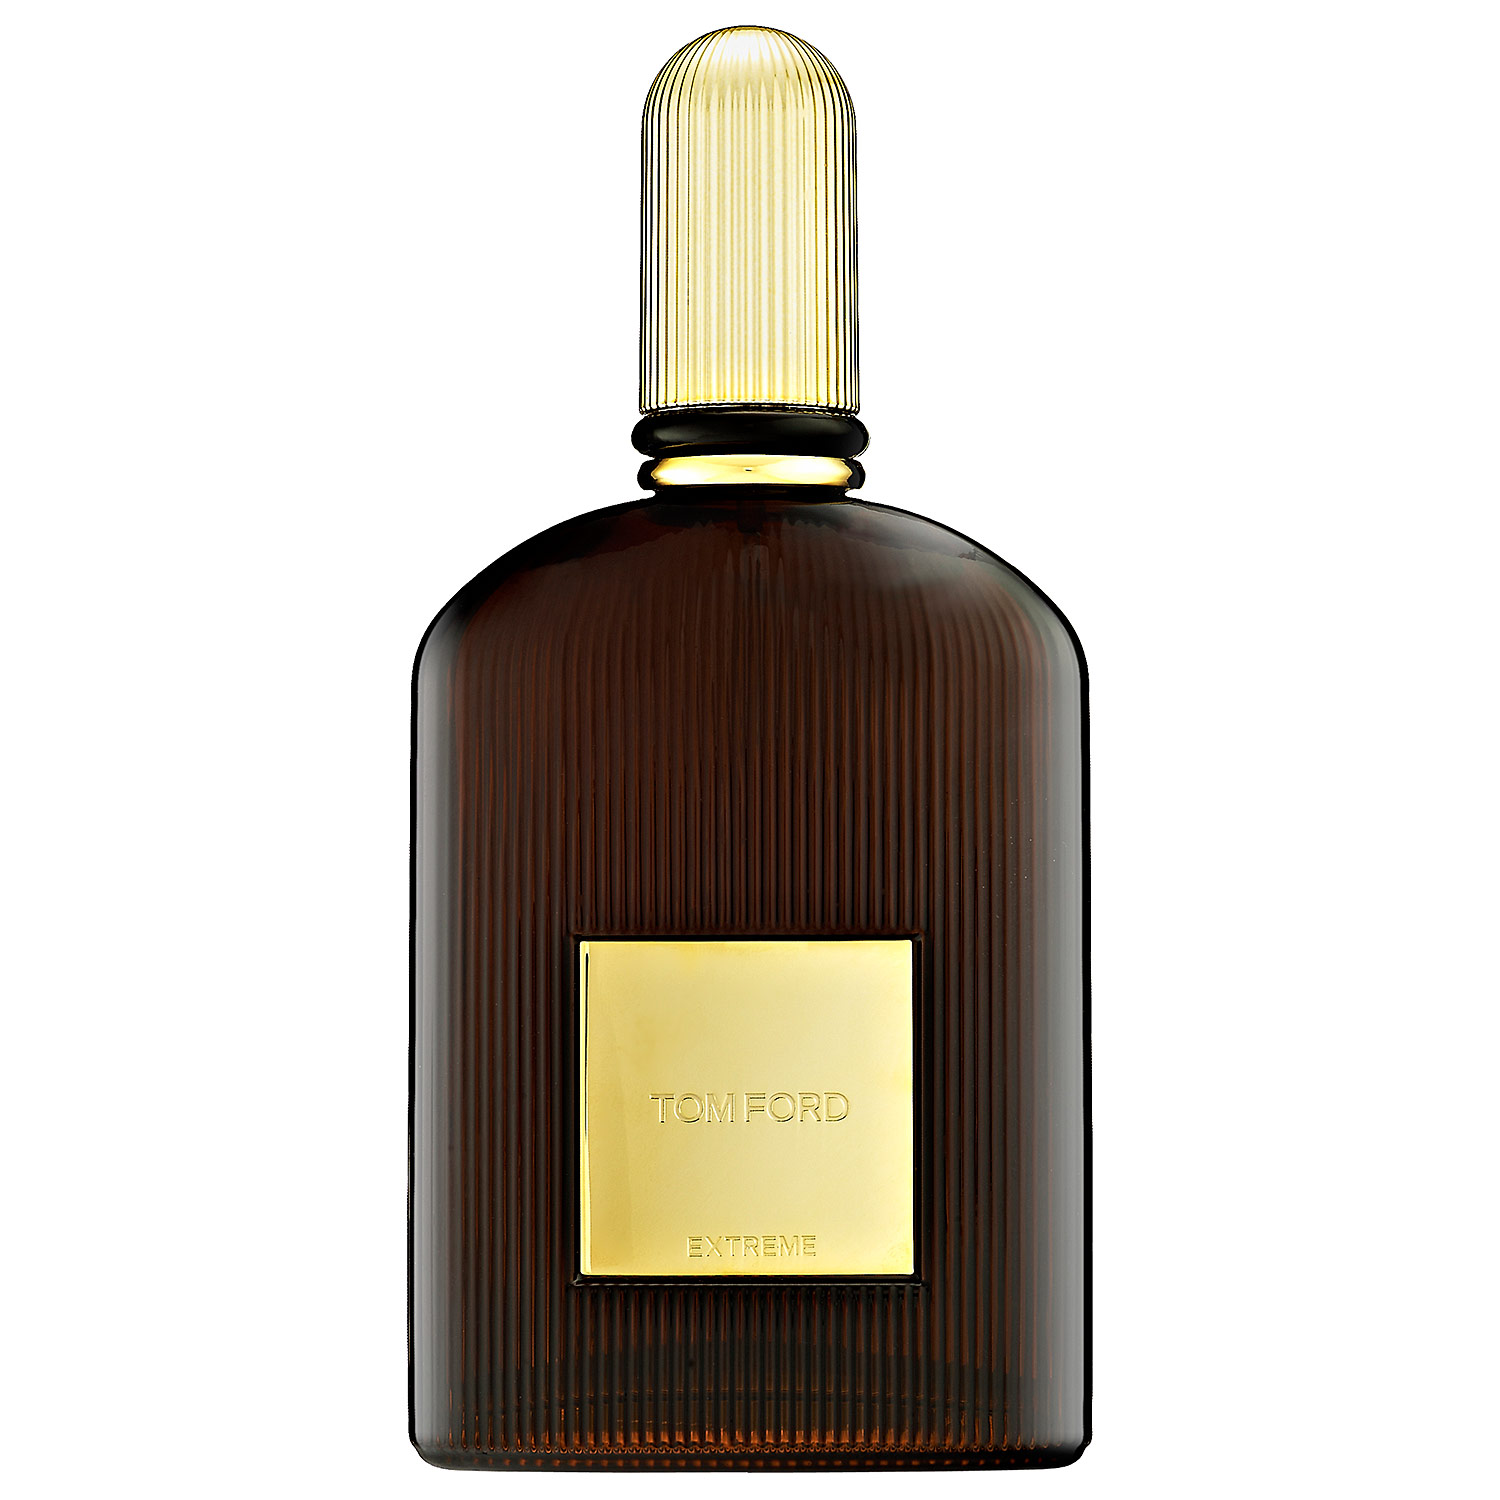 Tom Ford Extreme Edt Fragrance Review Eaumg